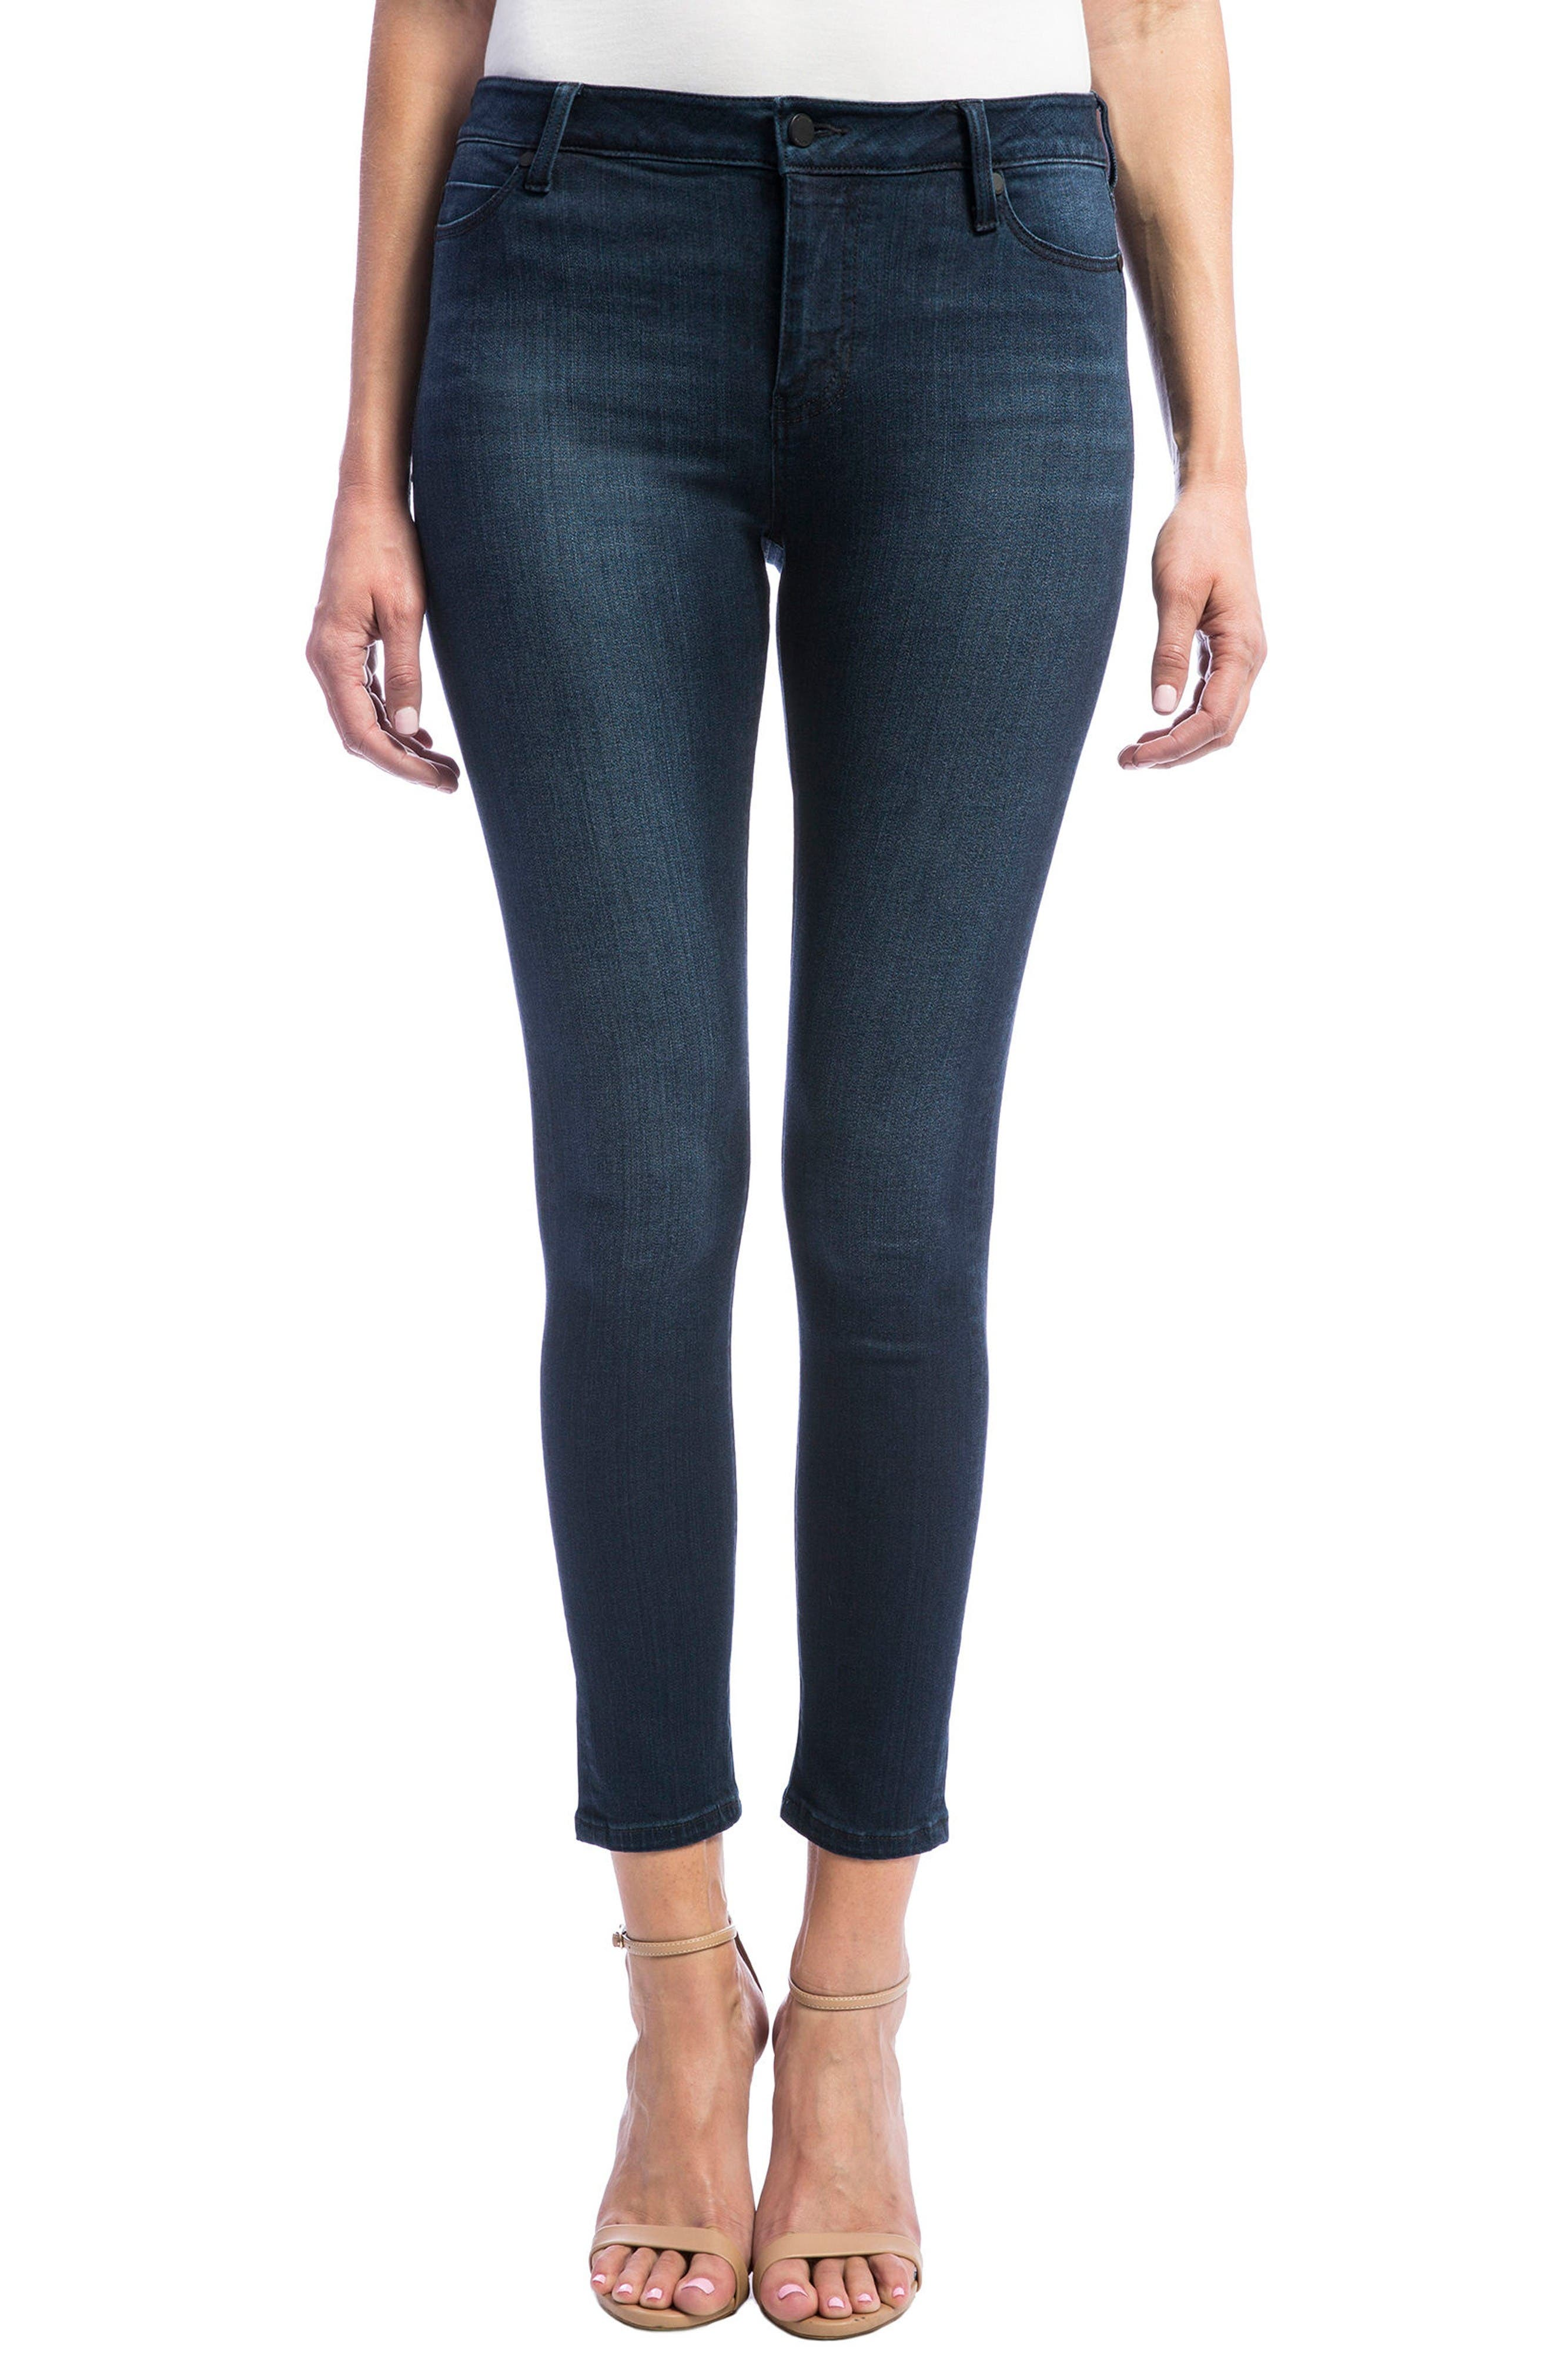 Main Image - Liverpool Jeans Company High Rise Stretch Ankle Skinny Jeans (Doheny Dark)